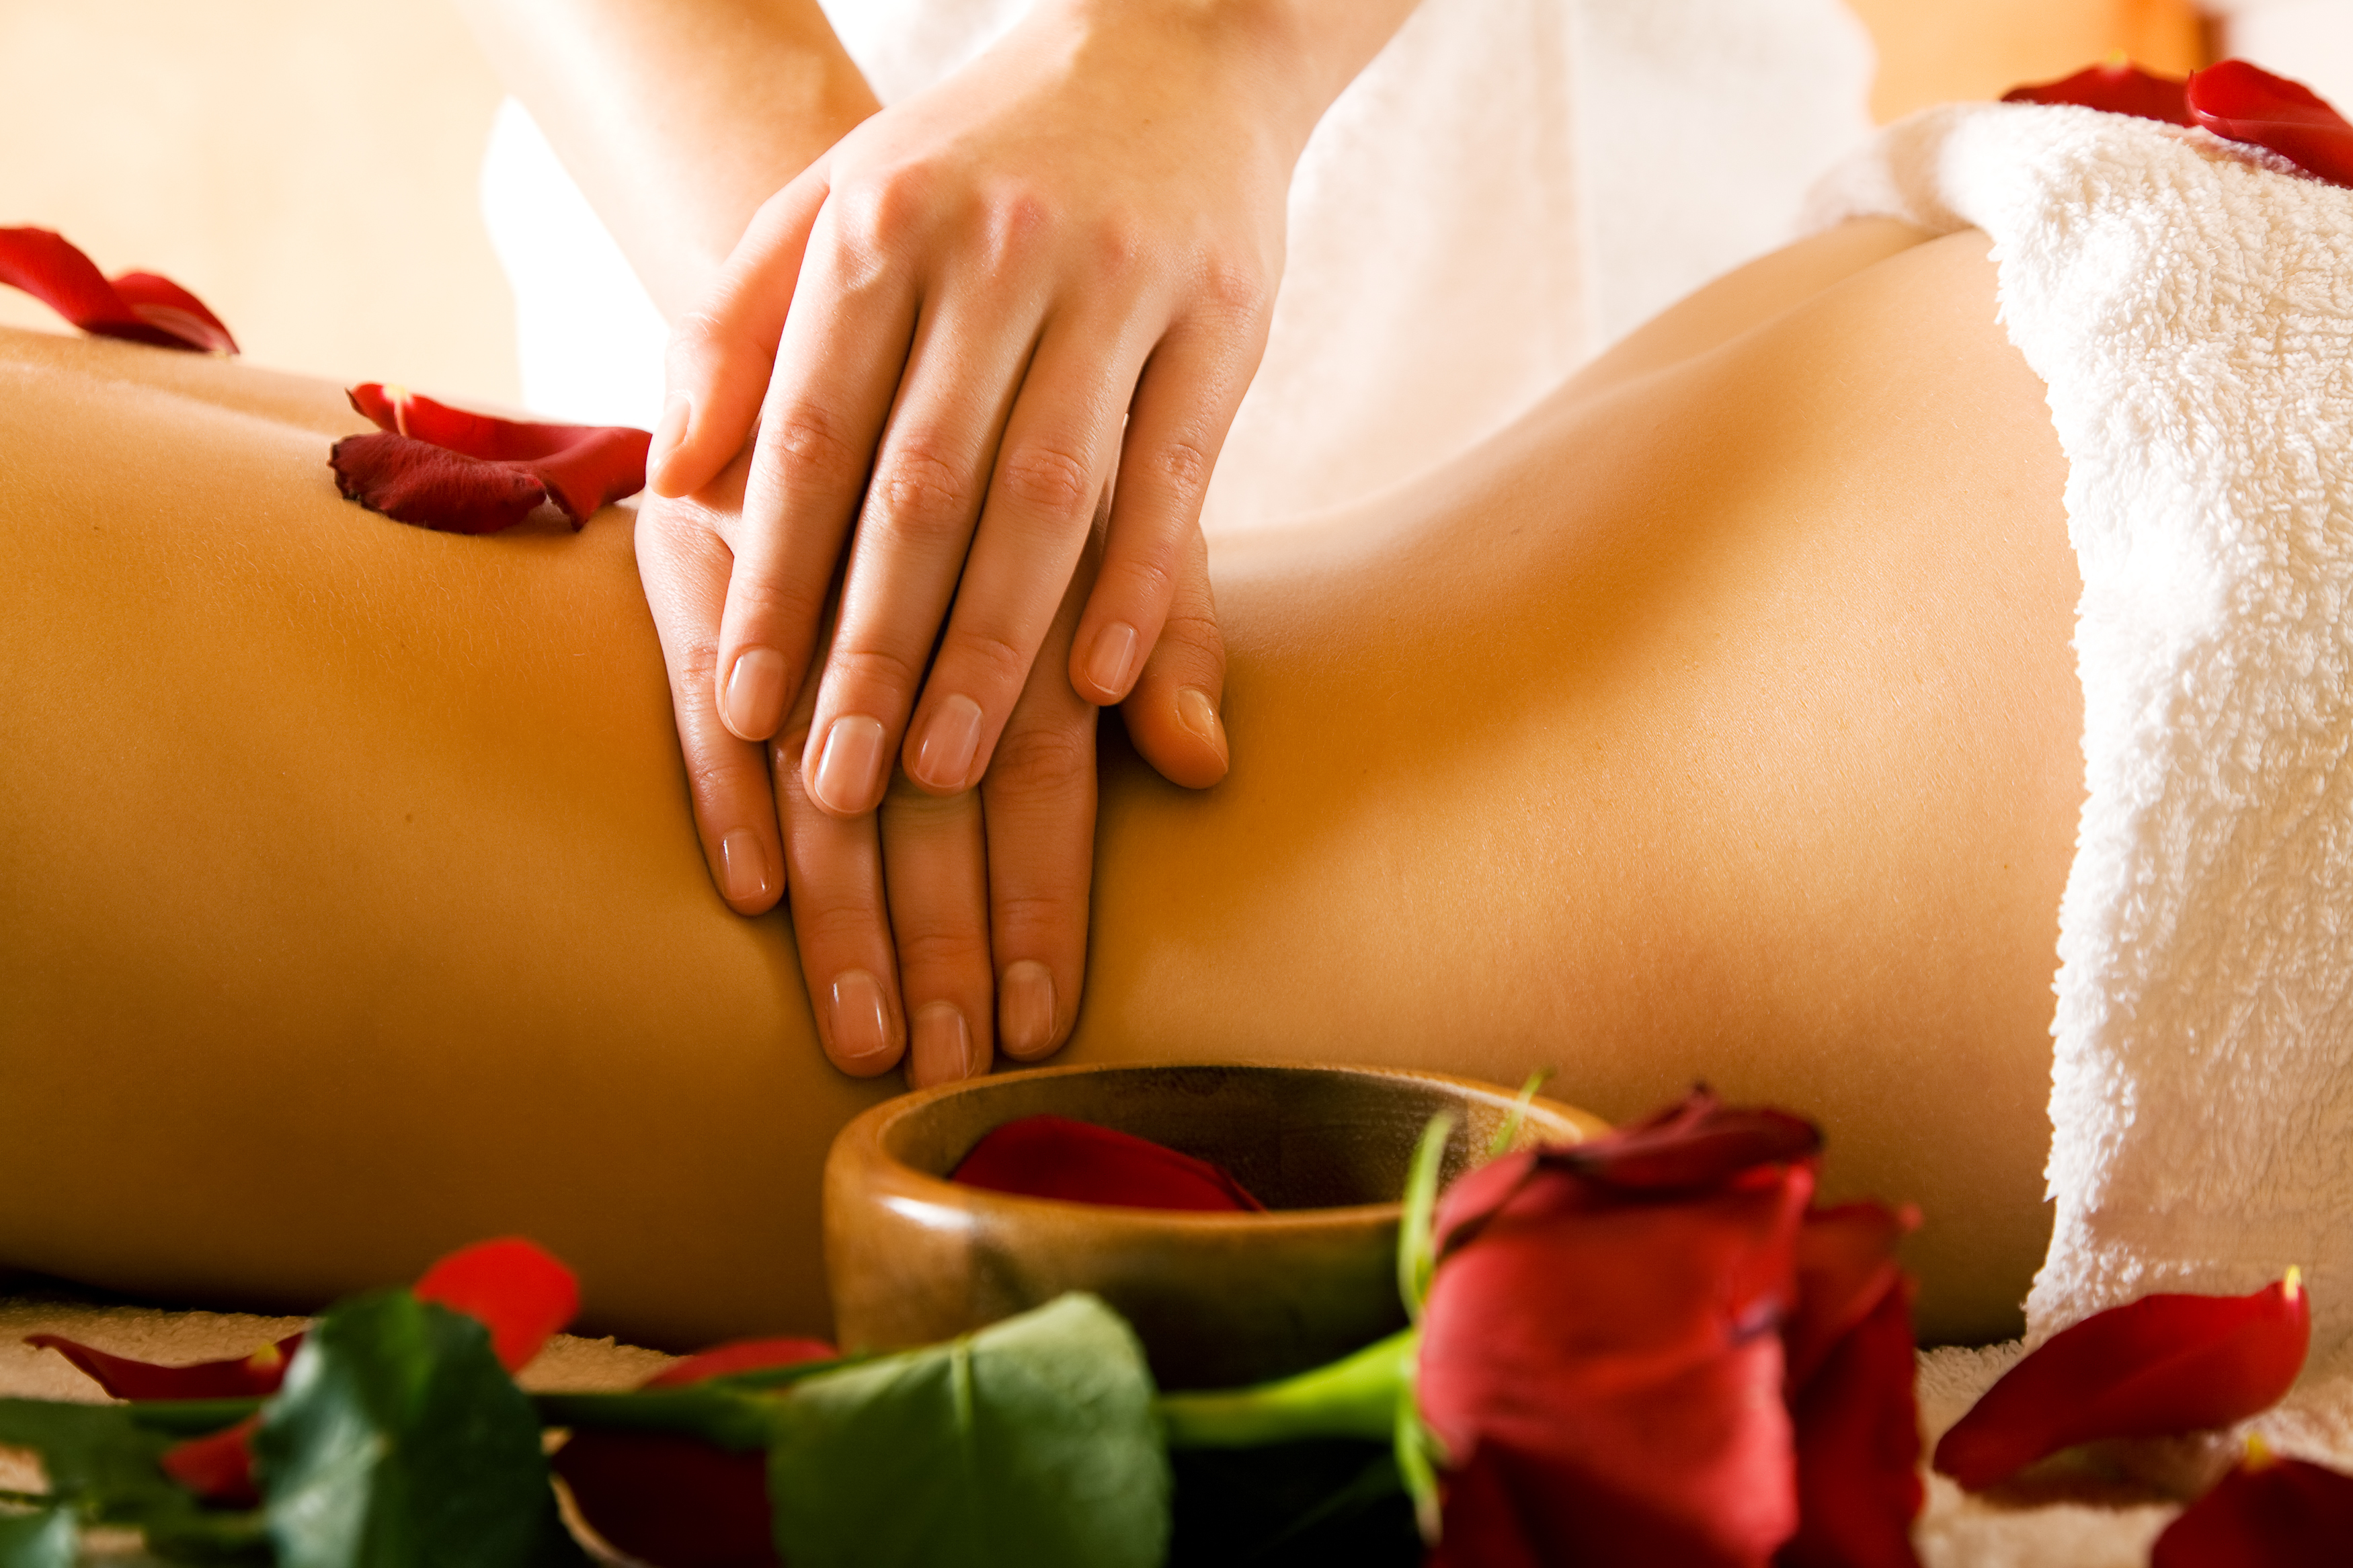 Back massage with roses